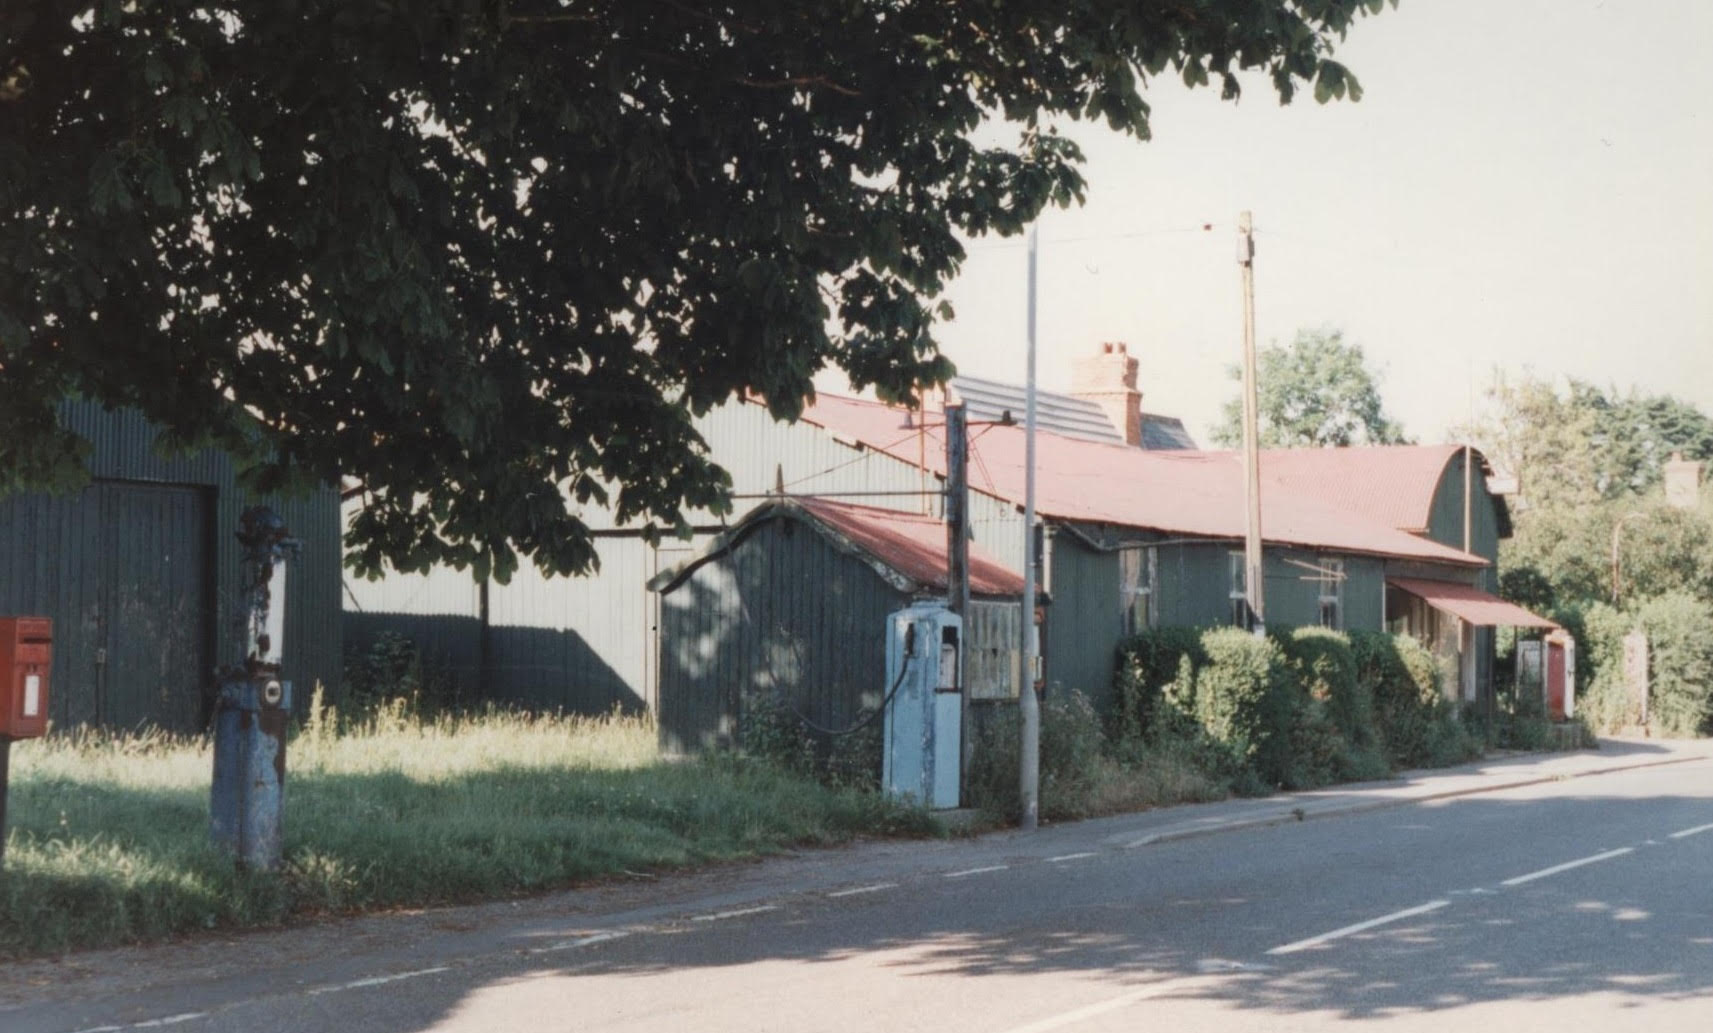 the abandoned garage site at Mareham-le-Fen (LVVS picture)